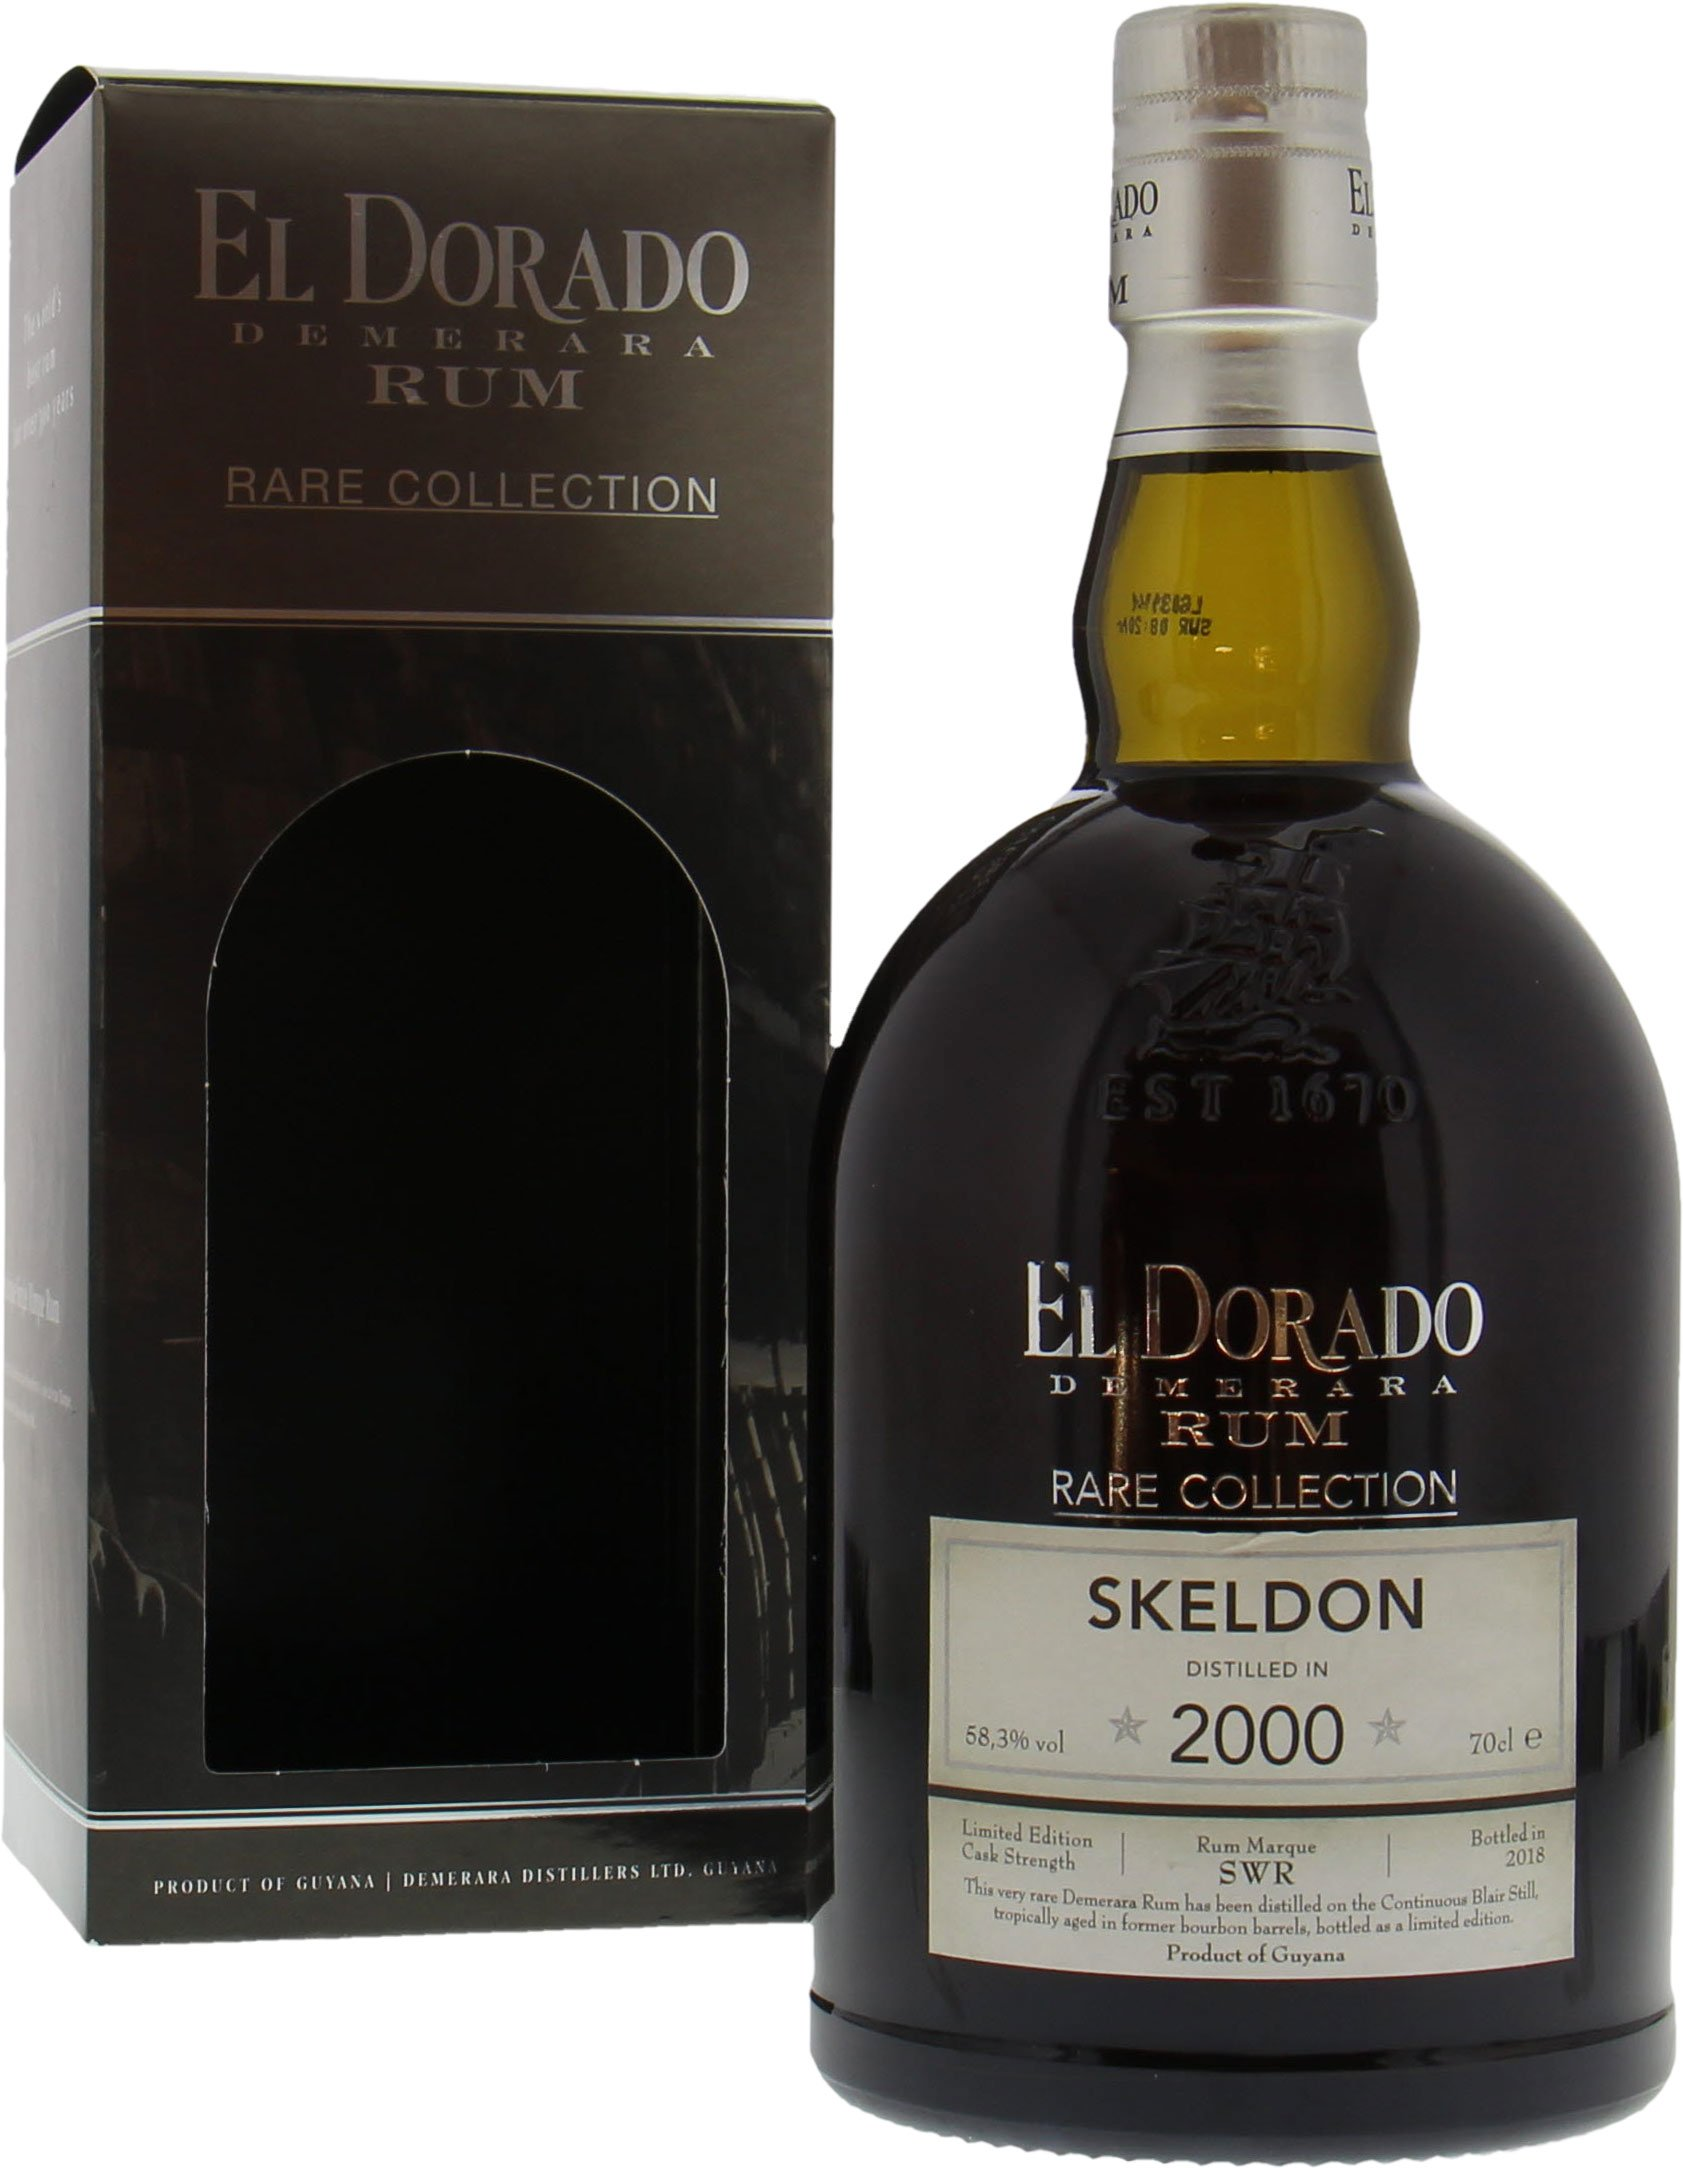 El Dorado - Skeldon 2000 Rare Collection 58.3% 2000